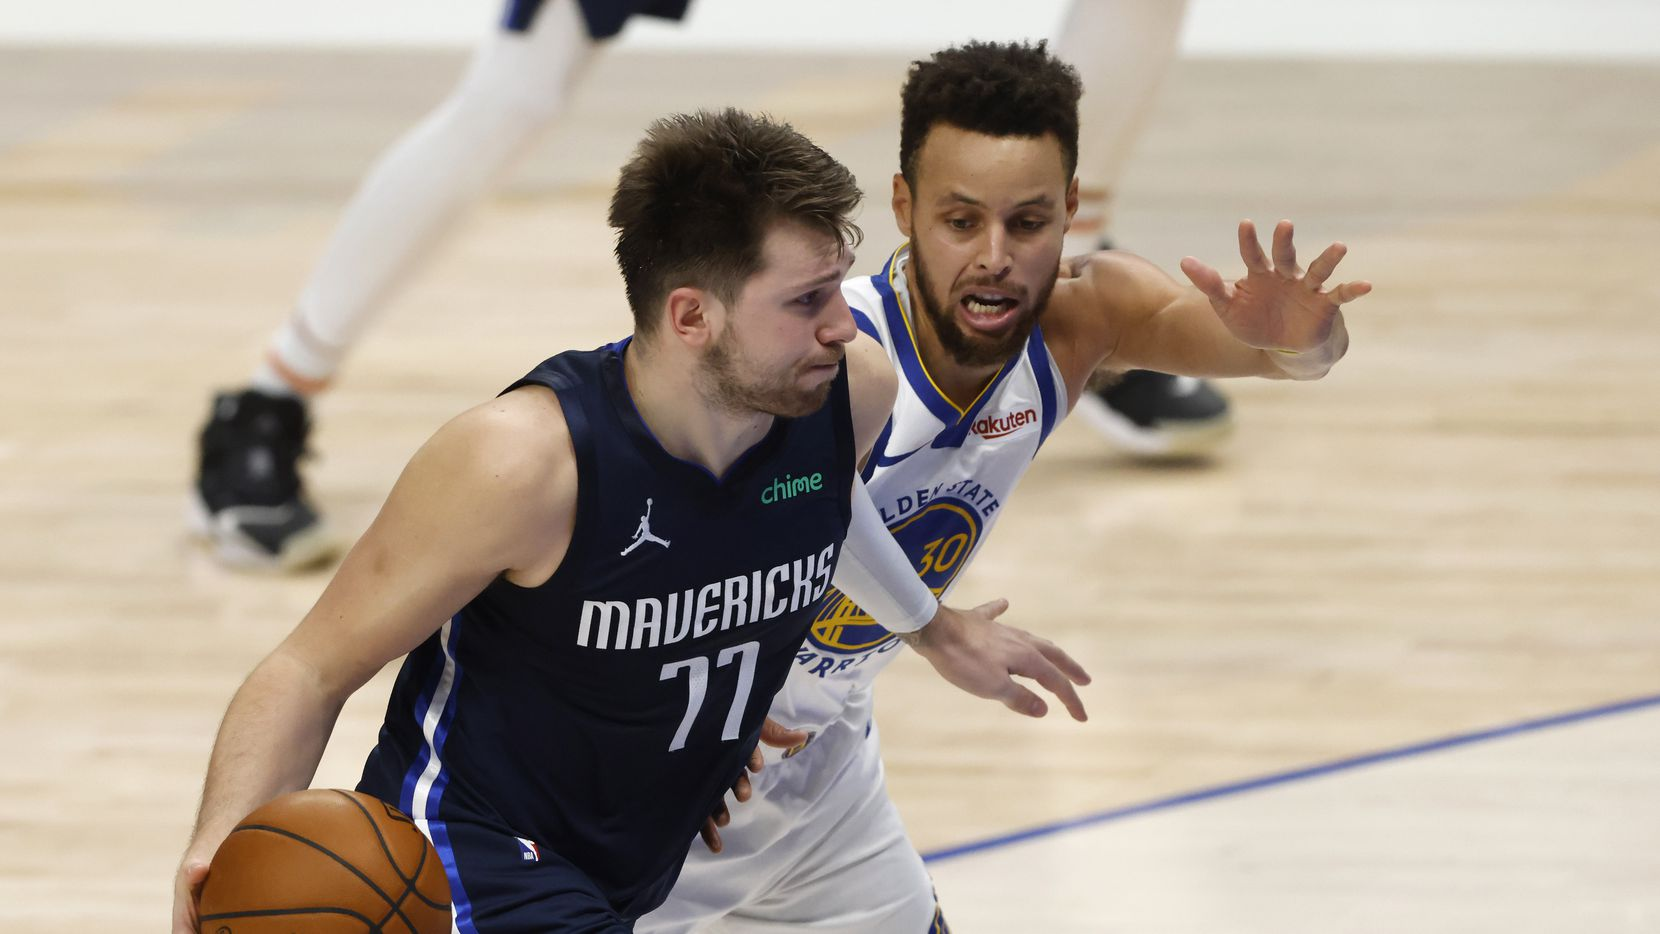 El jugador de los Mavericks de Dallas, Luka Doncic (77), conduce el balón ante la custodia del guardia de los Warriors de Golden State, Stephen Curry, el 6 de febrero de 2021 en el American Airlines Center de Dallas.